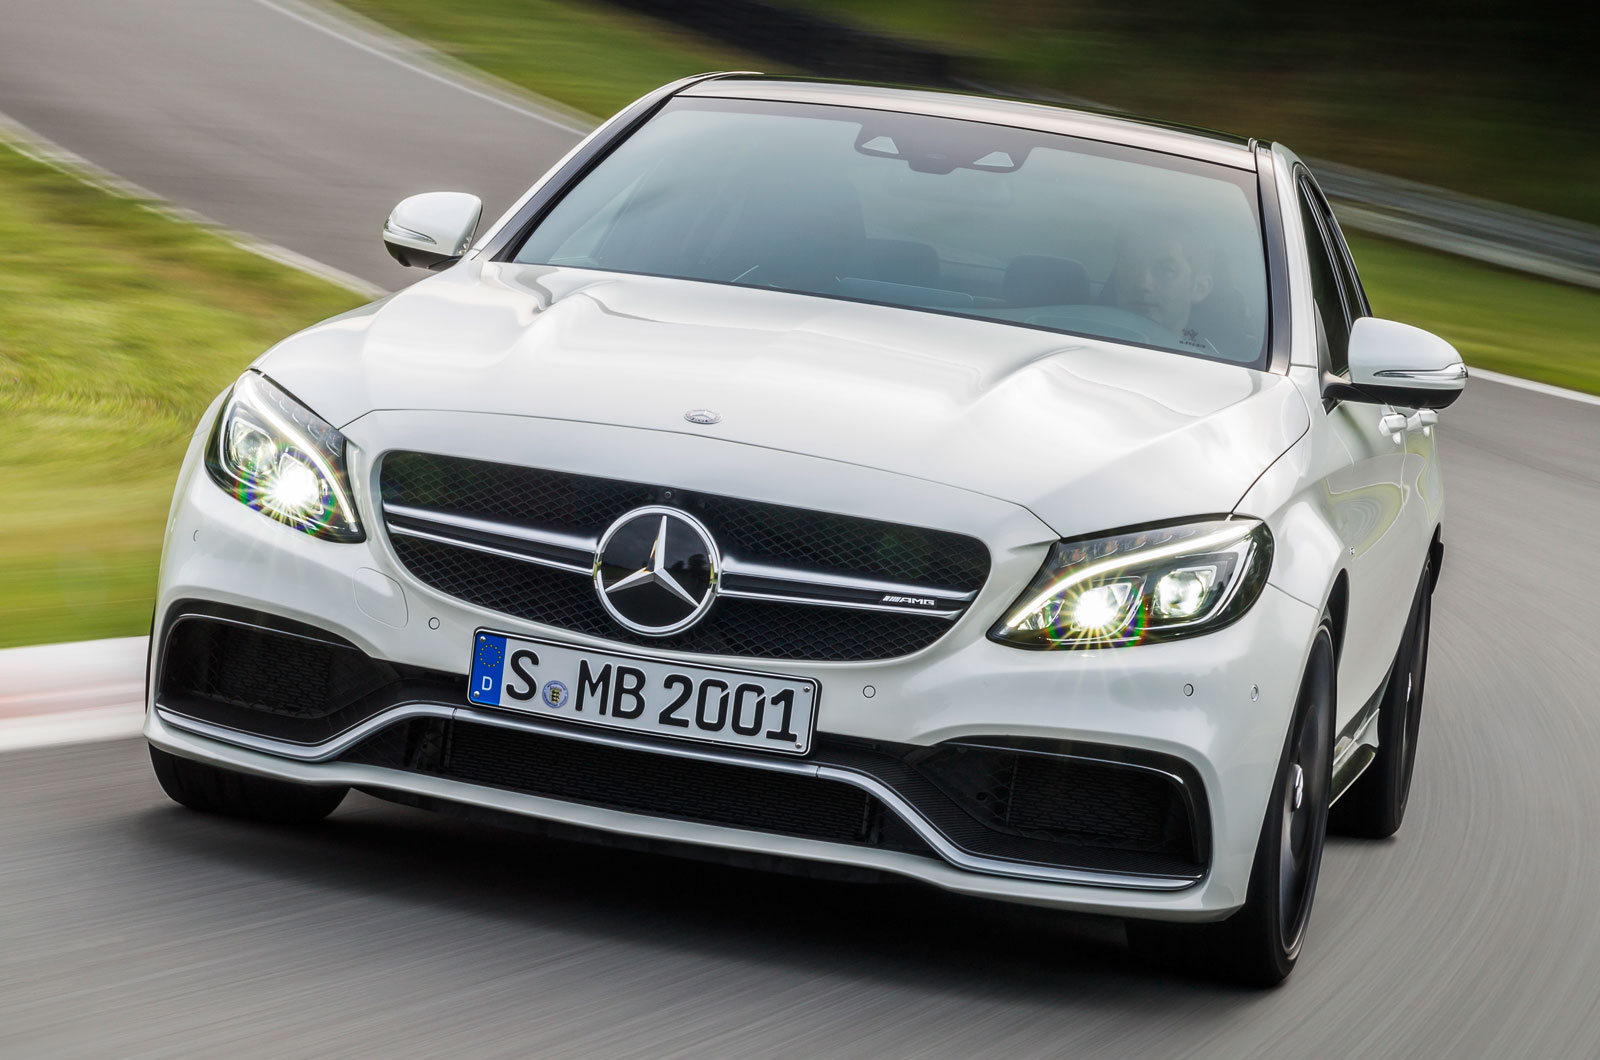 Mercedes amg c63 on sale for 59 795 autocar for Mercedes benz c63 amg for sale